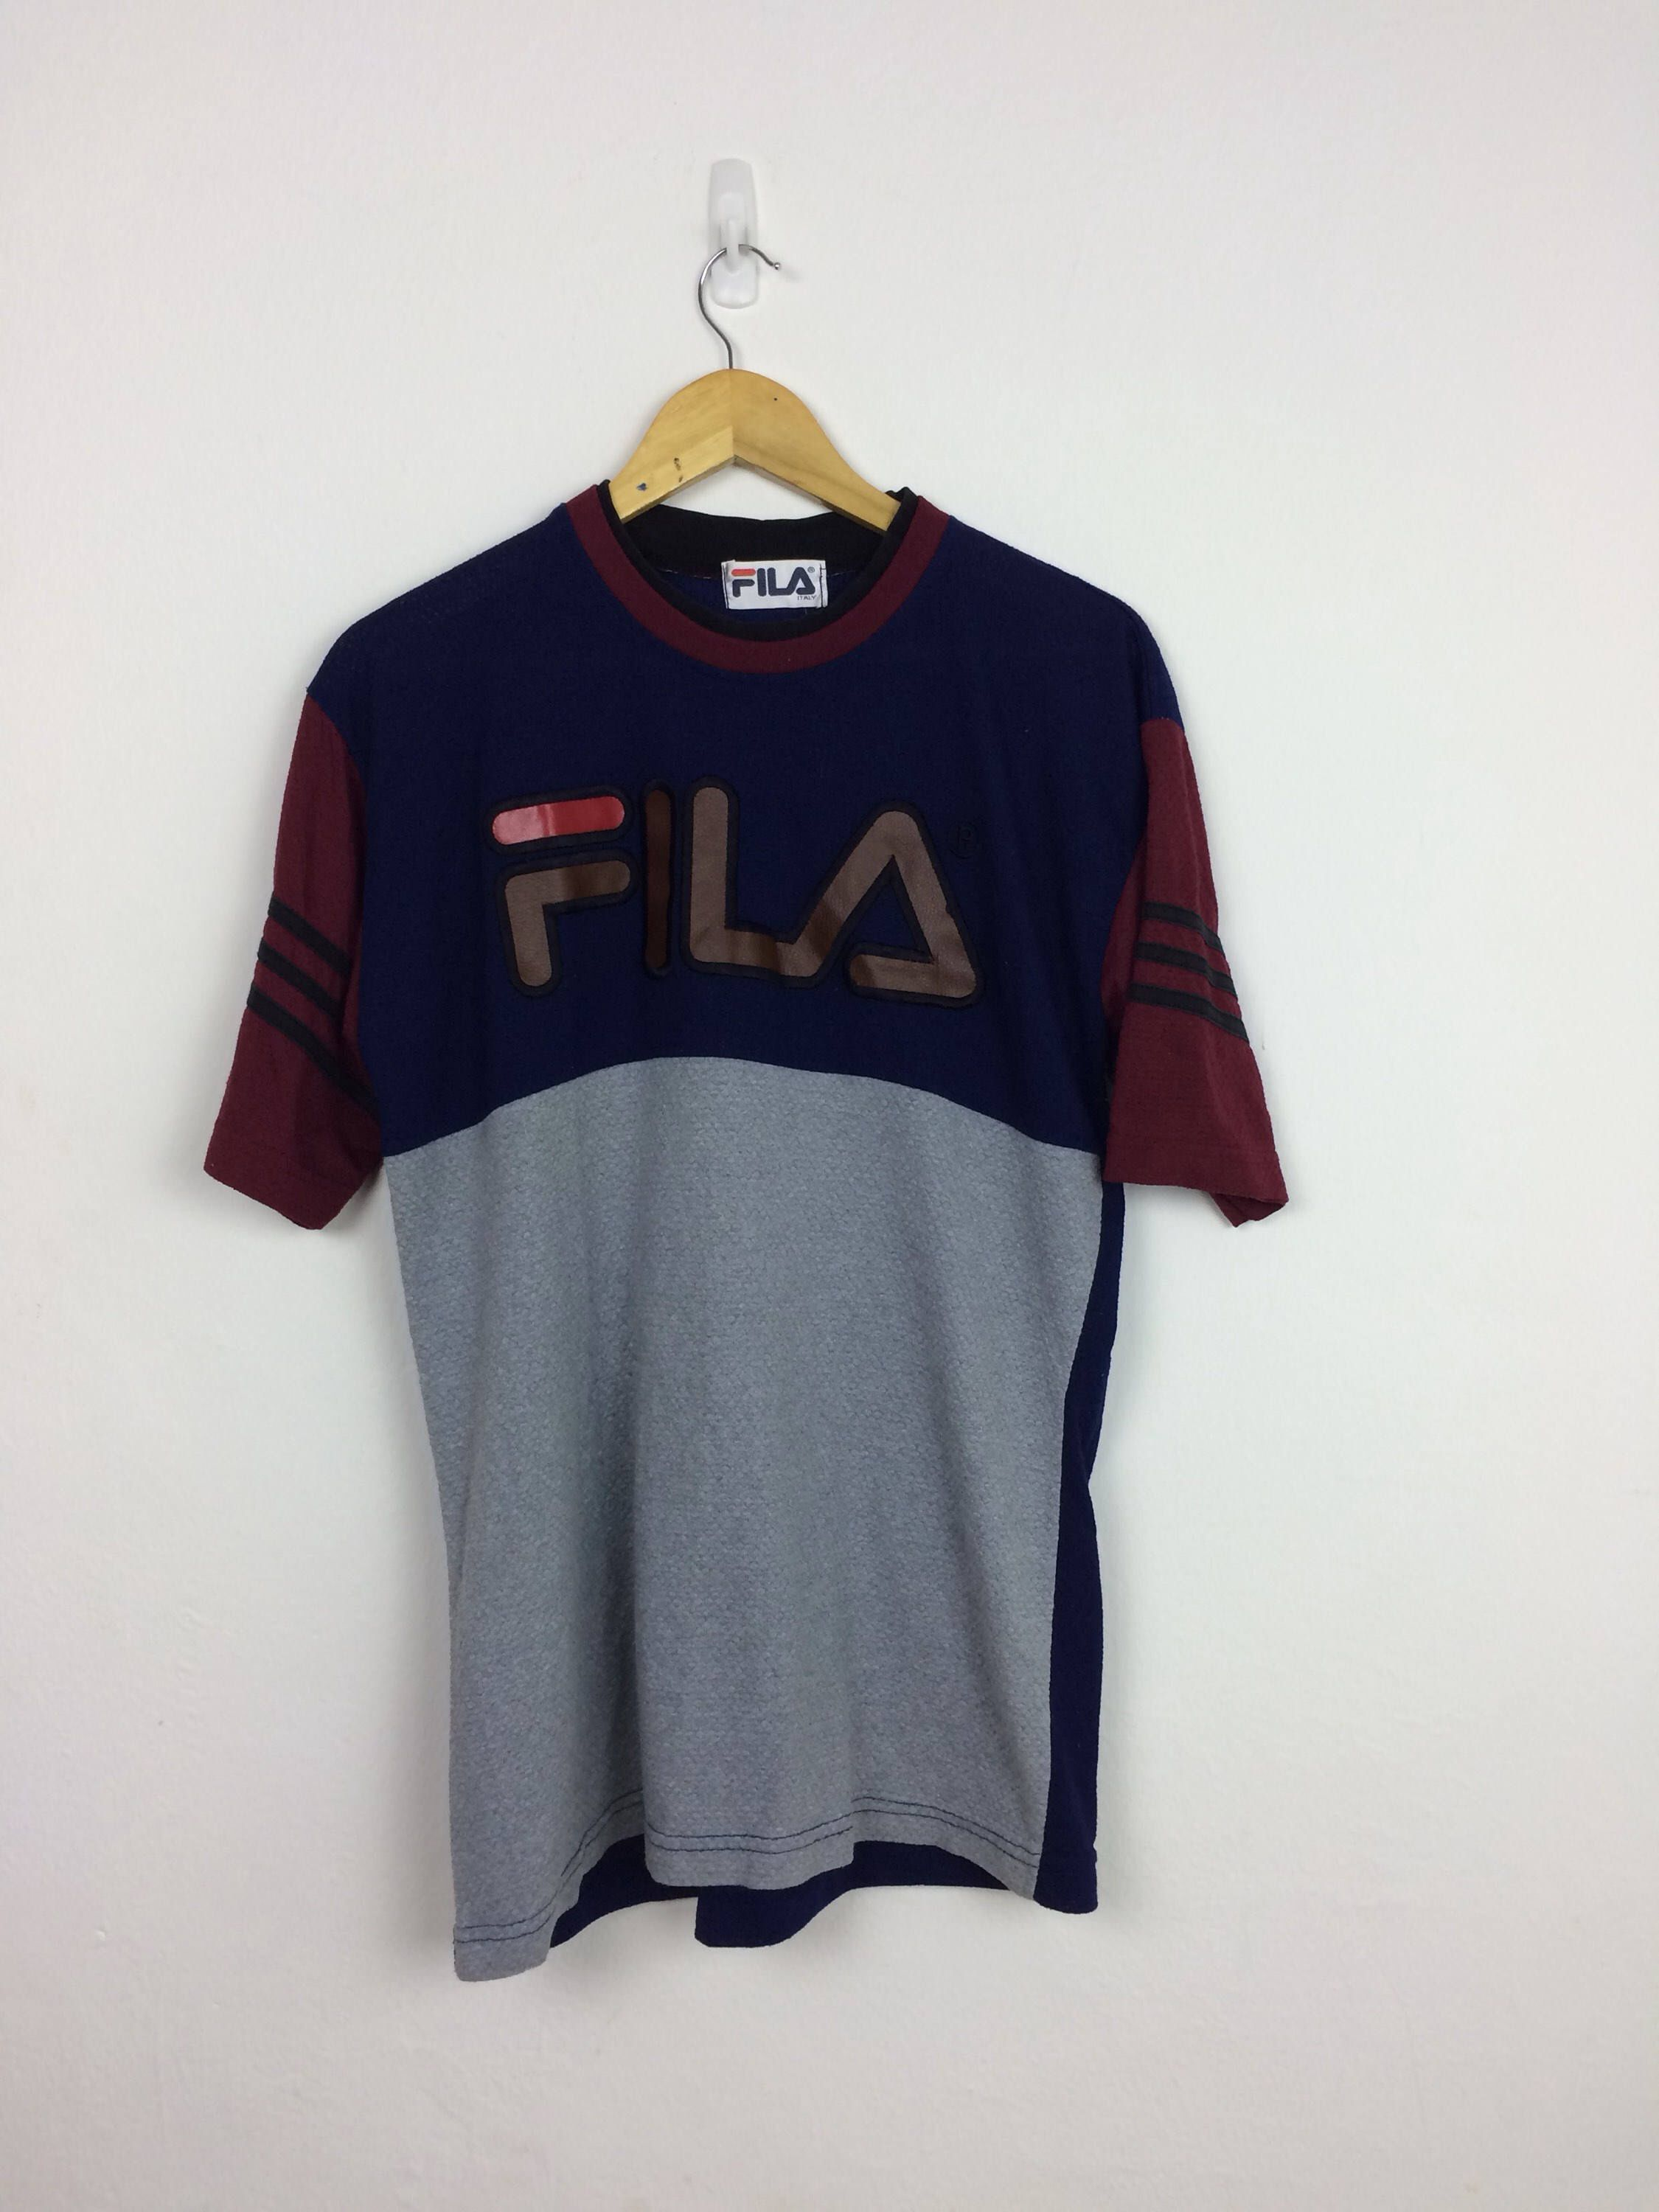 8ba596a711876d Excited to share the latest addition to my  etsy shop  Vintage Fila T Shirt  Size L Big Logo Streetwear  clothing  men  tshirt  streetwear  kappa   champion ...